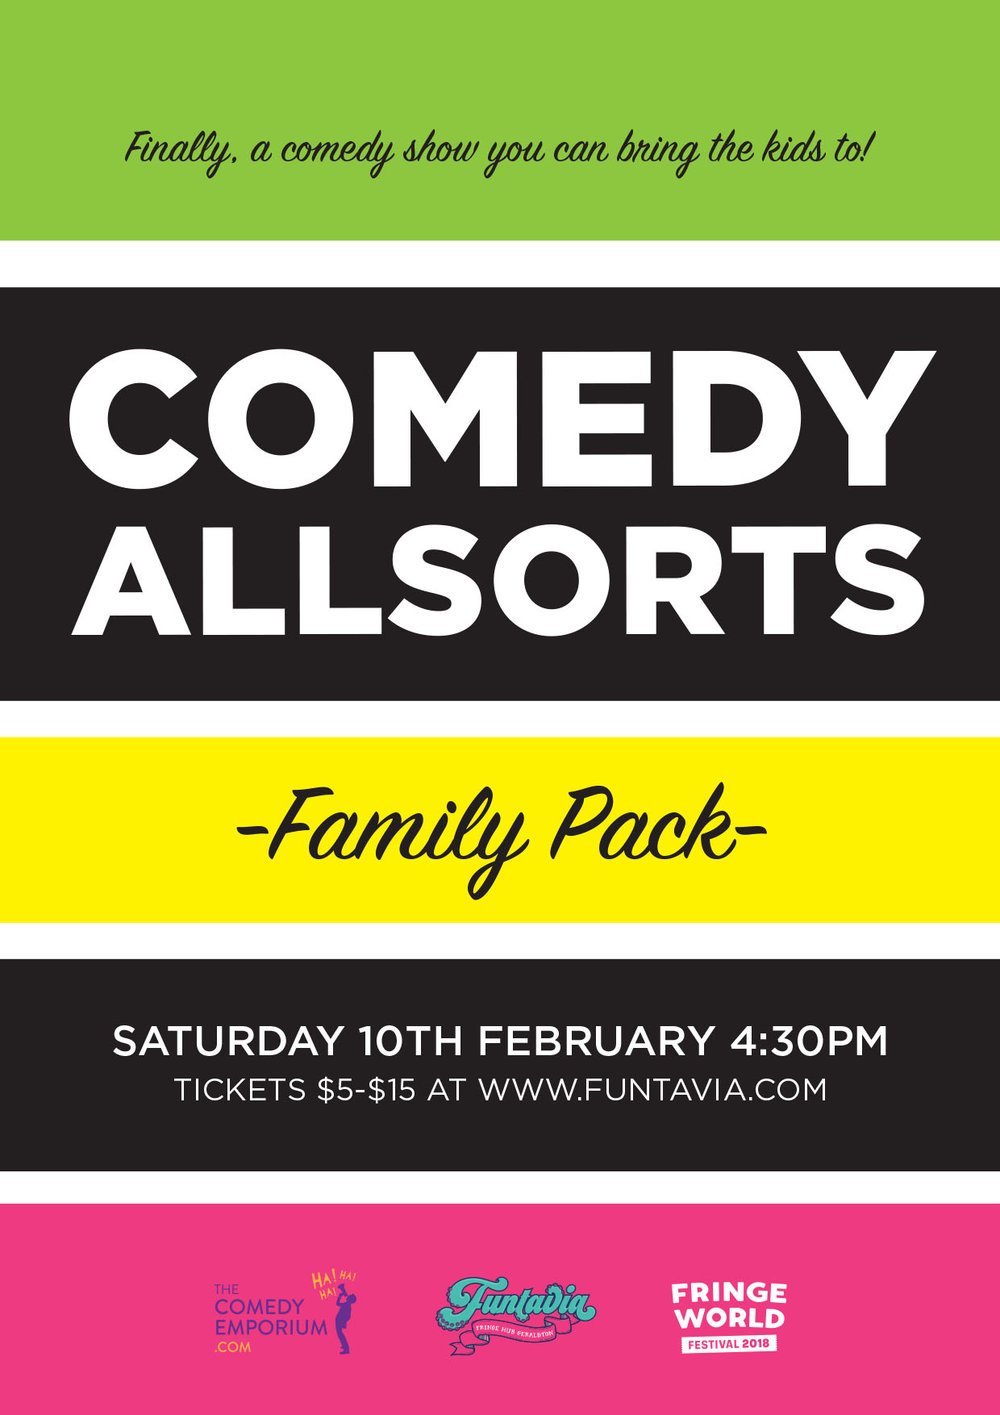 A Family Comedy Show - A comedy variety show for all ages performed by all ages. Geraldton has been crying out for a comedy show for all the family, well here it is! Family friendly stand-up, award winning young stand-up comedians and improvisers, with a little music thrown to keep it fresh. MC'ed by local stand-up and improv performers and coaches Kim Canny and Jody Quadrio. This locally built show, with performers aging from 11-46 years. It's gives local youth and adults an opportunity to be part of a Fringe show to encourage and continue to grow the exciting potential of the Midwest. Bring the family and have a laugh!